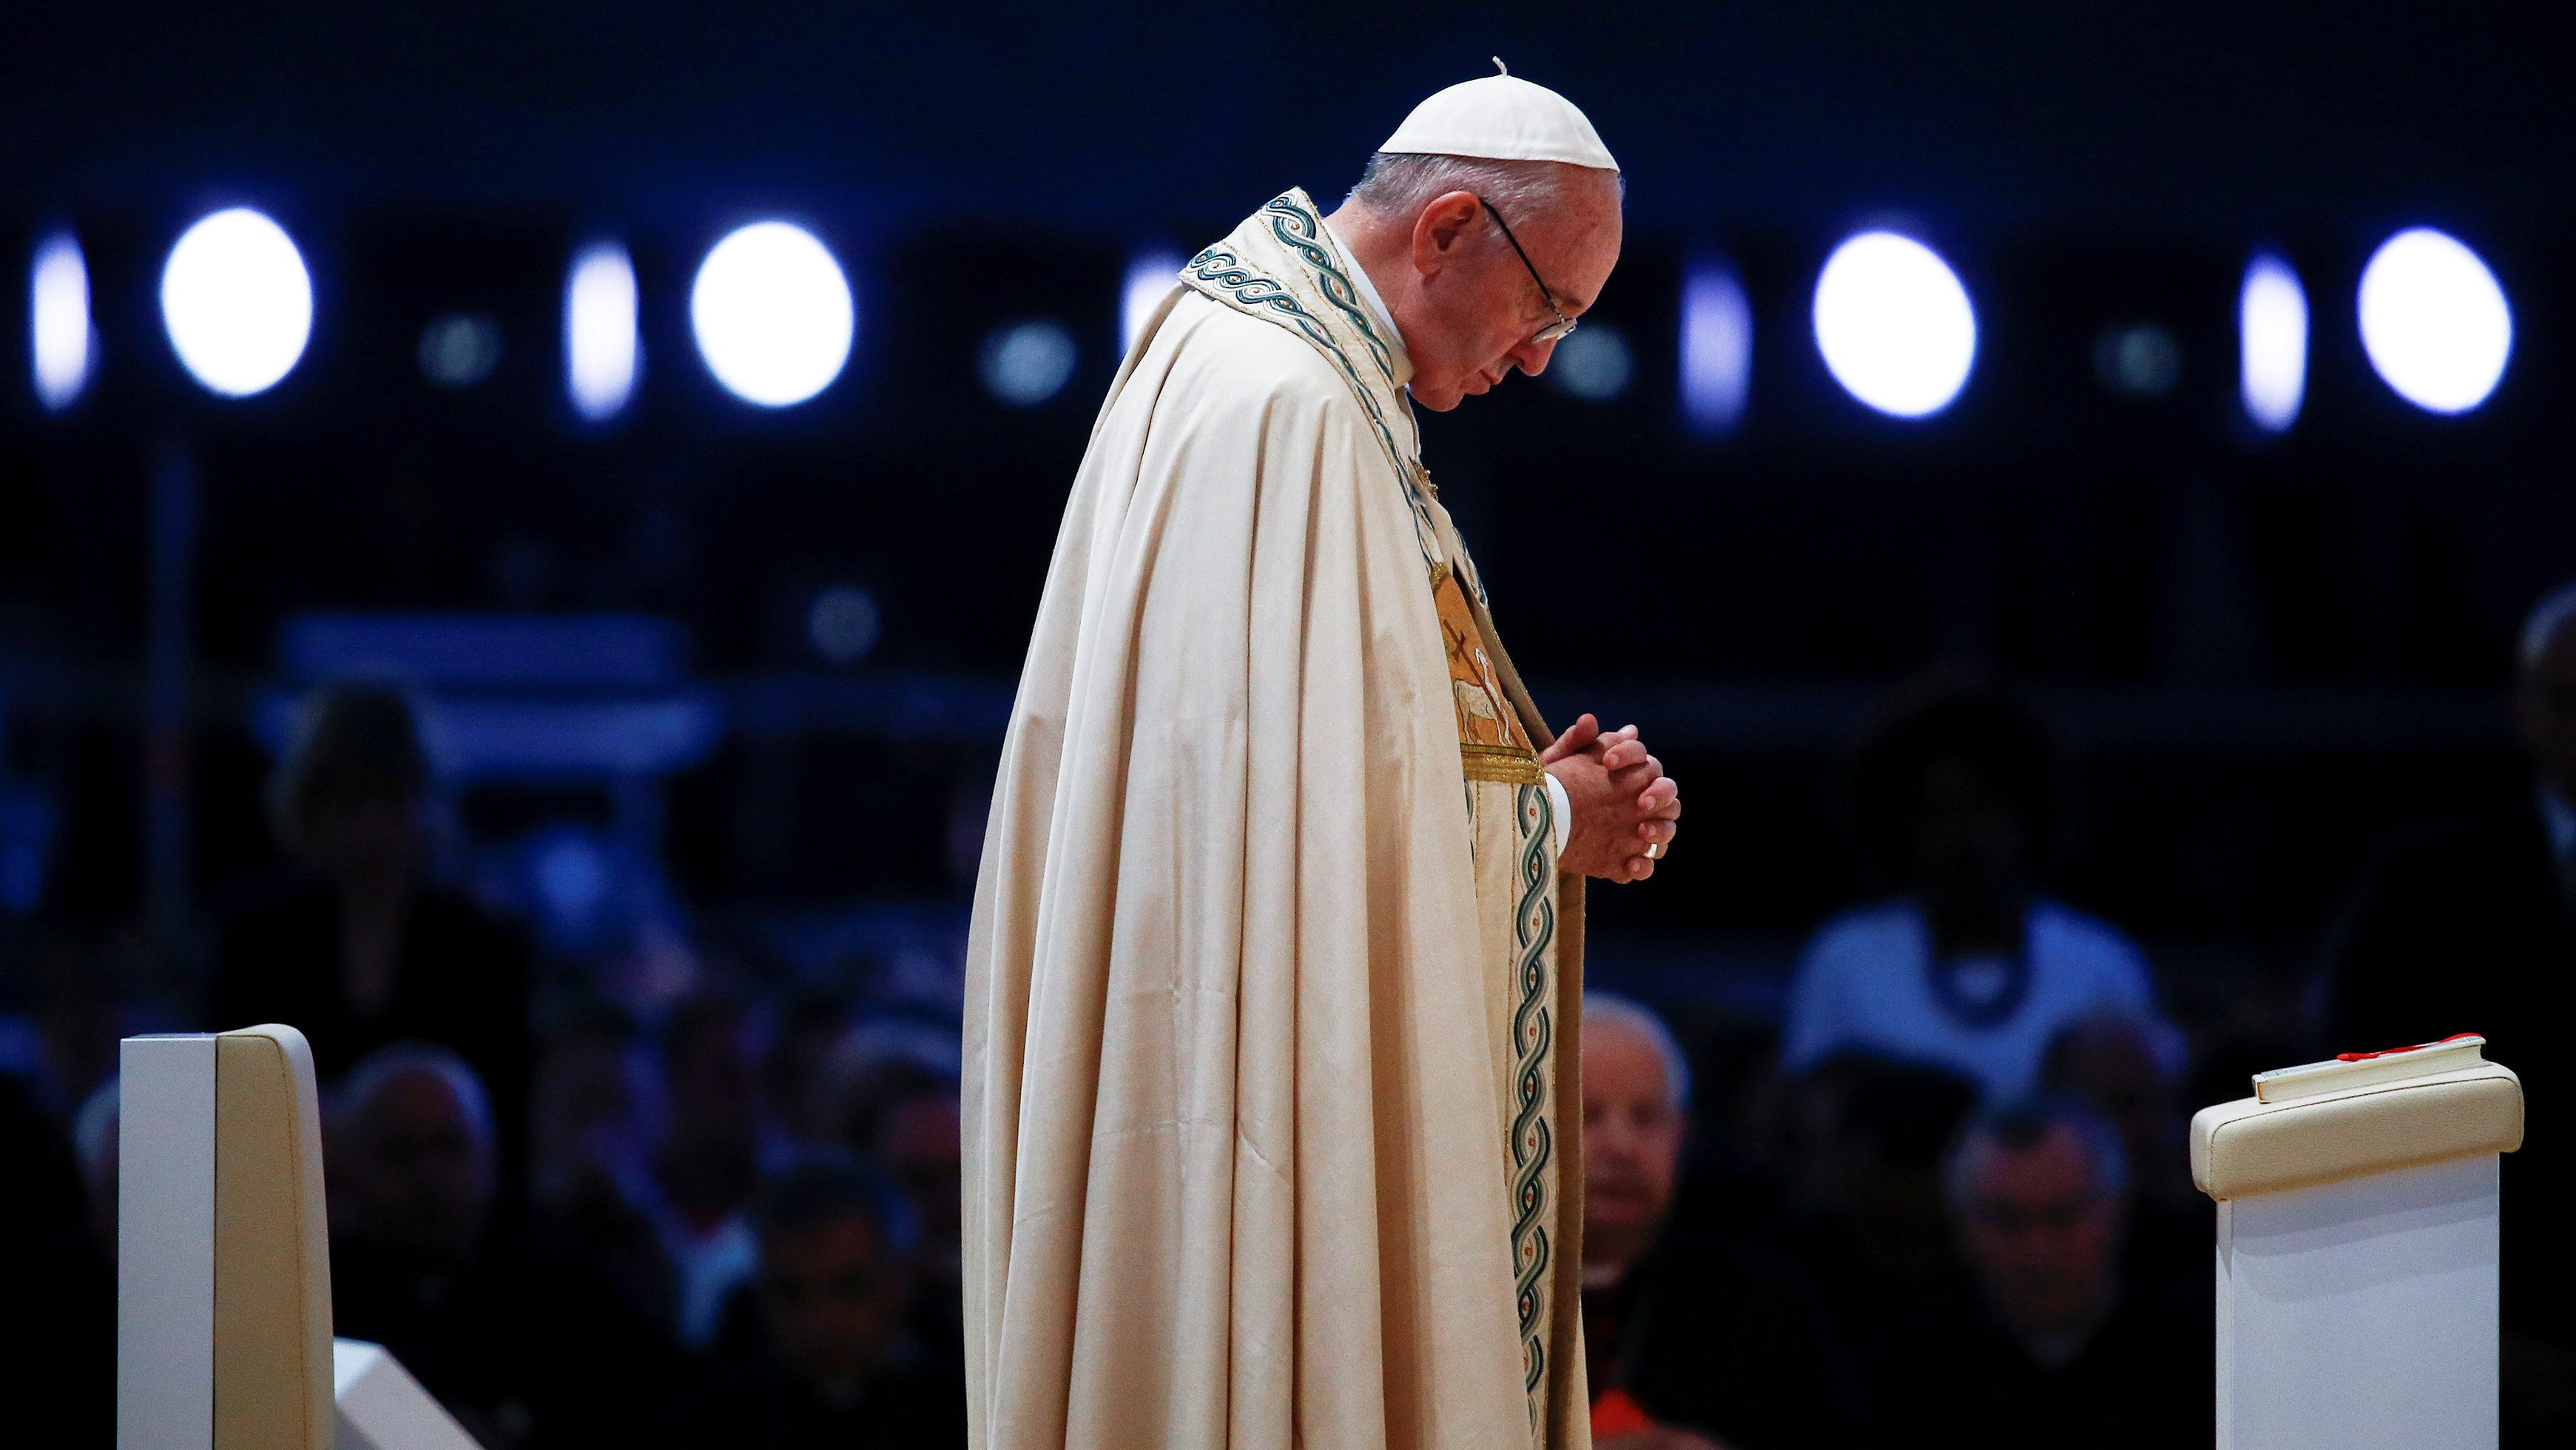 Pope Francis prays during a Prayer Vigil with young at the Campus Misericordiae during World Youth Day in Brzegi, near Krakow, Poland July 30, 2016.    REUTERS/Stefano Rellandini     TPX IMAGES OF THE DAY      - RTSKEC4